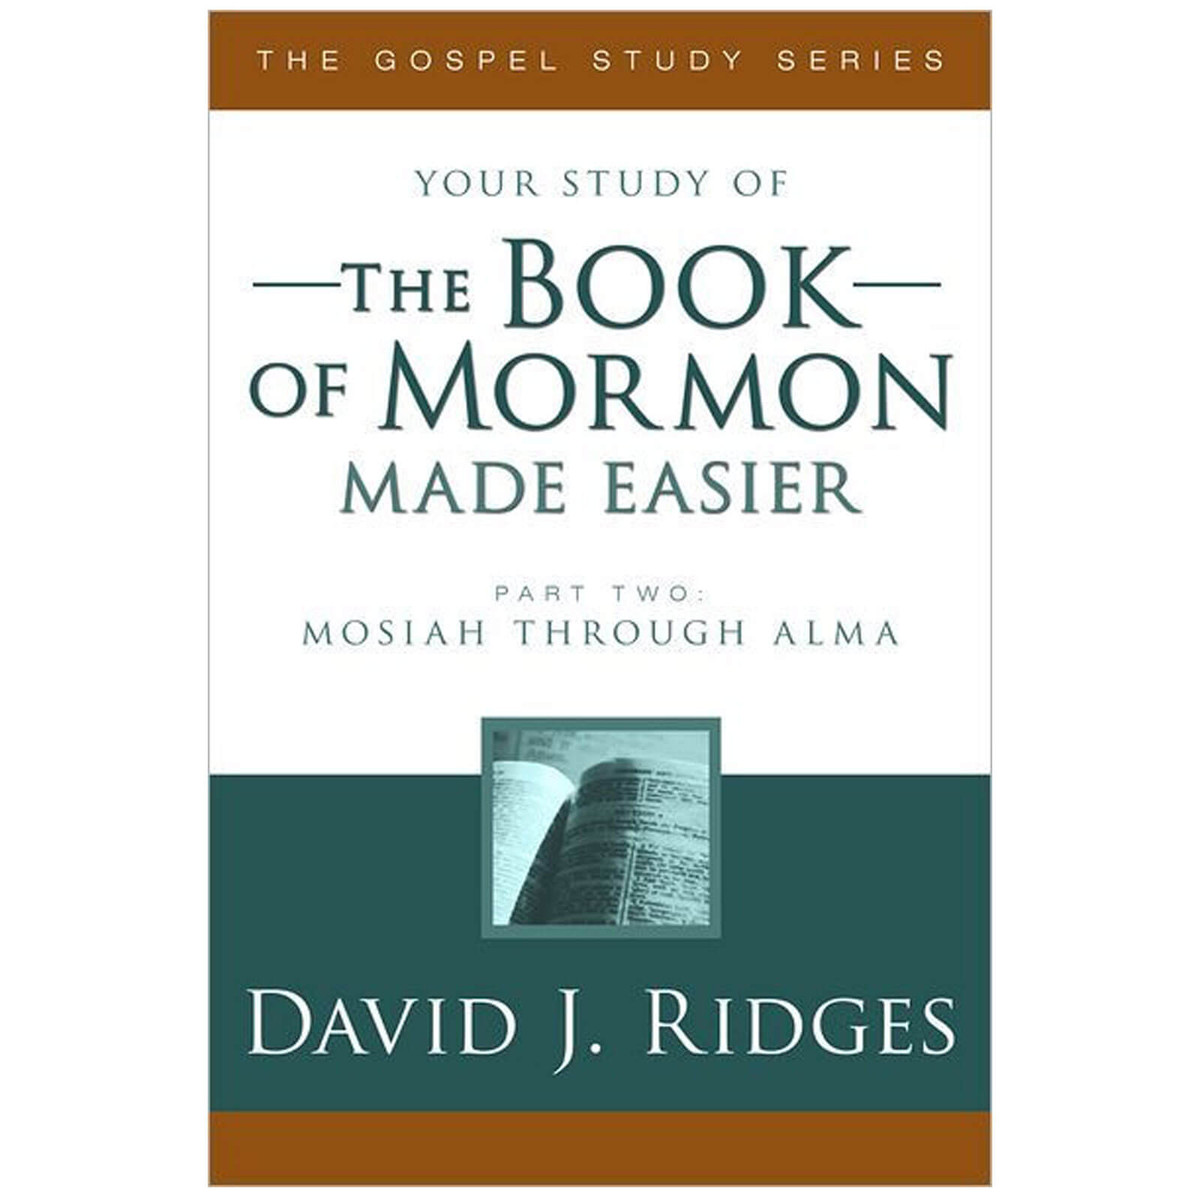 Your Study of the Book Of Mormon Made Easier Part Two By David J. Ridges